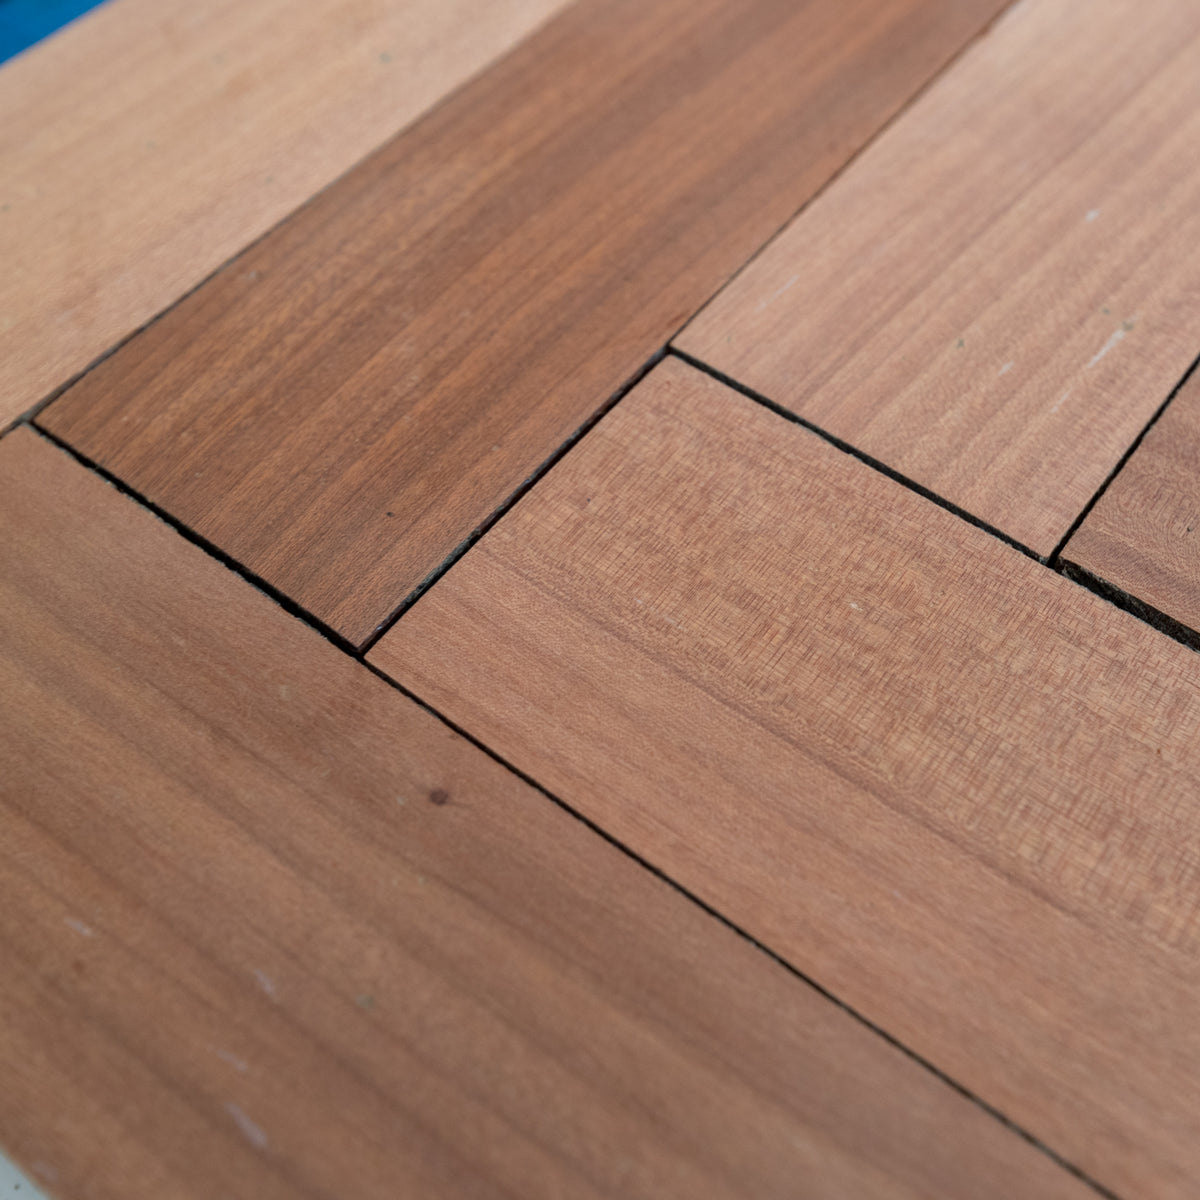 Reclaimed Sapele Parquet Flooring 173m² Available | The Architectural Forum